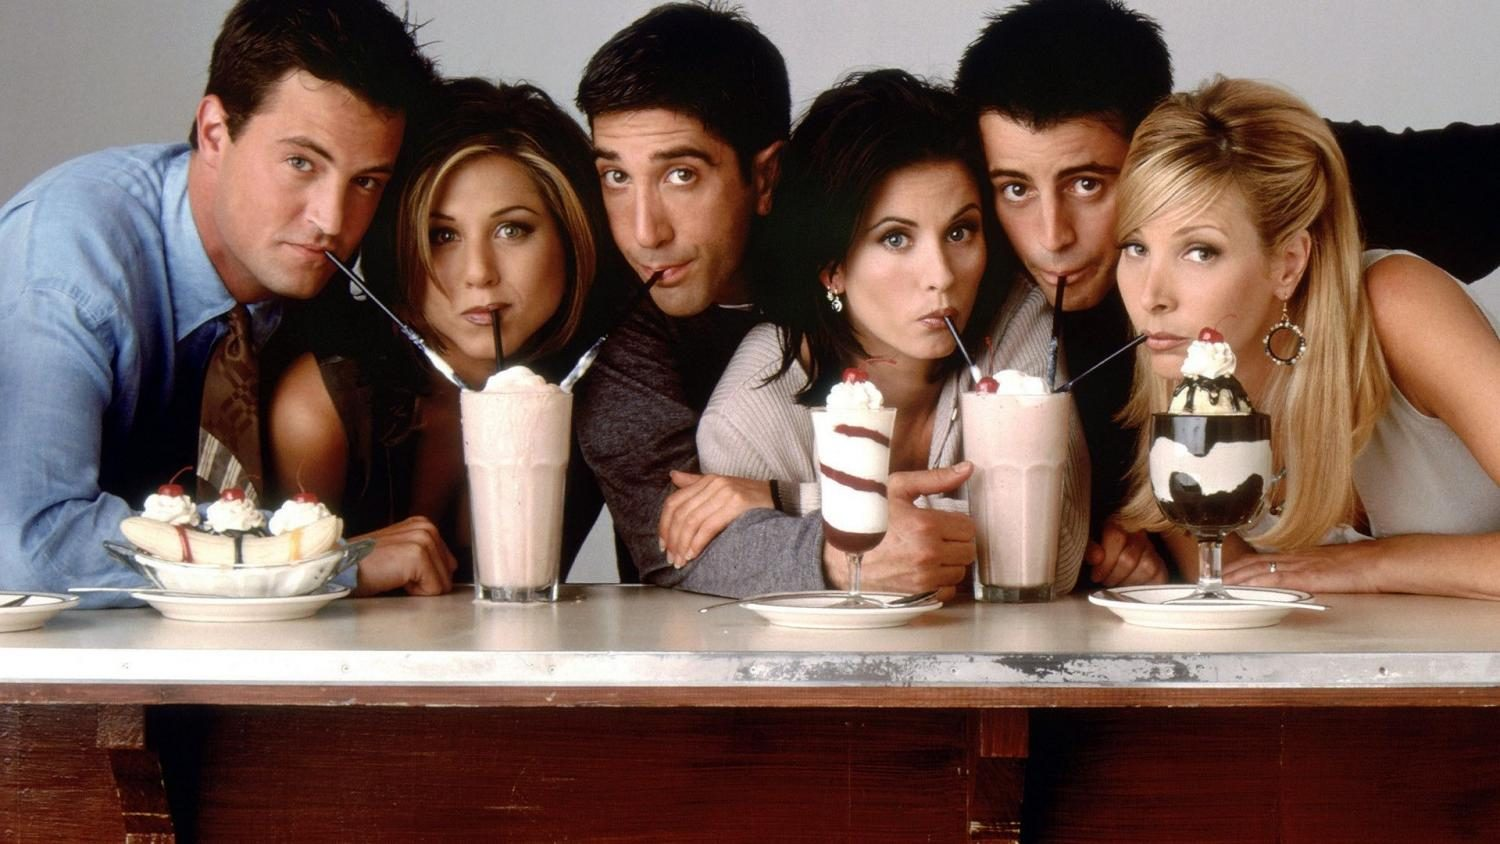 The+cast+of+Friends+lines+up+for+a+photo.+From+left+to+right%3A+Chandler+%28Matthew+Perry%29%2C+Rachel+%28Jennifer+Aniston%29%2C+Ross+%28David+Schwimmer%29%2C+Monica+%28Courteney+Cox%29%2C+Joey+%28Matt+LeBlanc%29%2C+and+Phoebe+%28Lisa+Kudrow%29.+